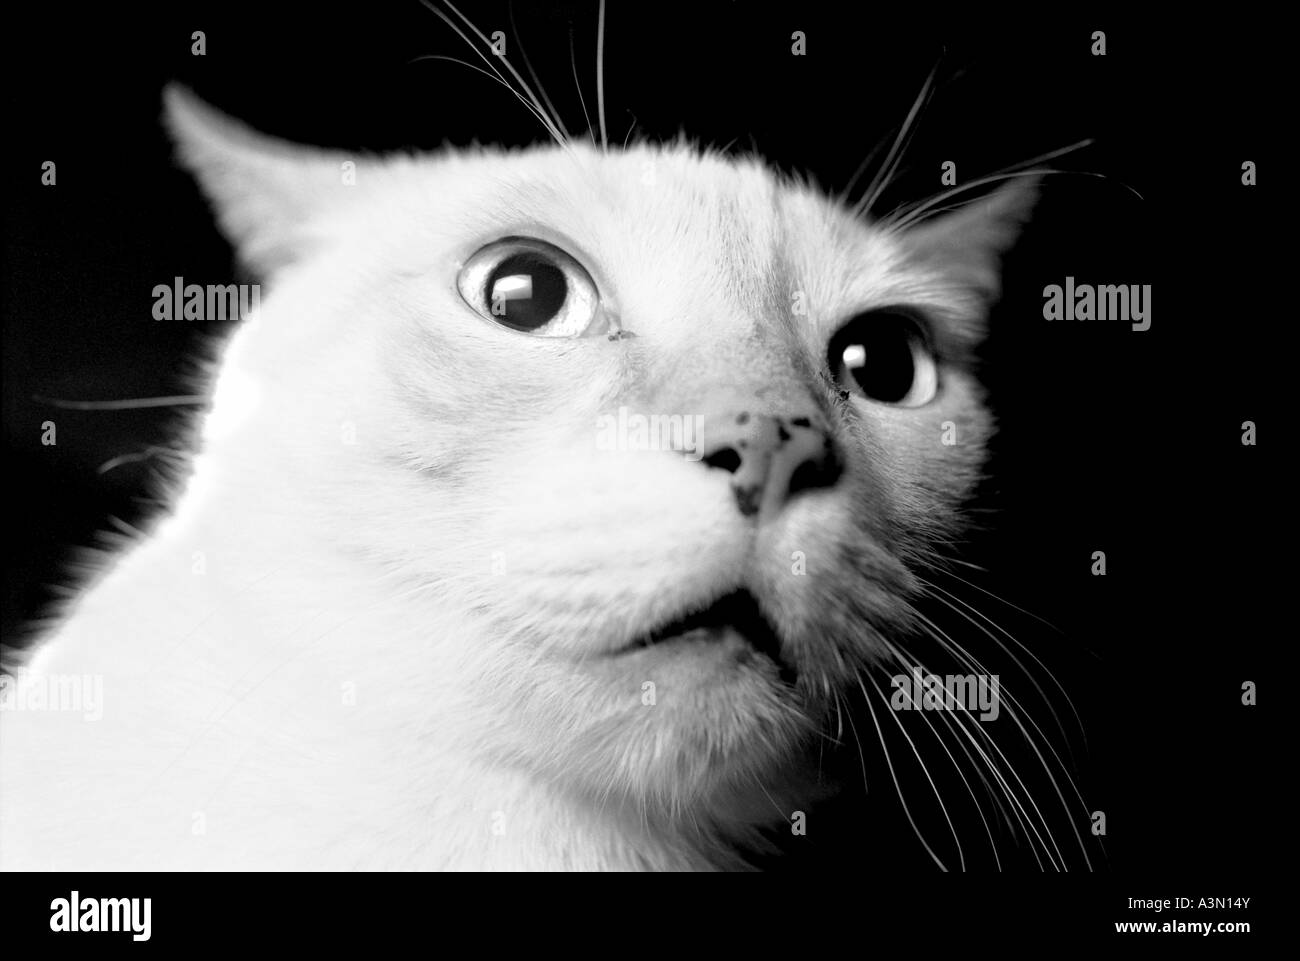 A mad cat thinking about something - Stock Image